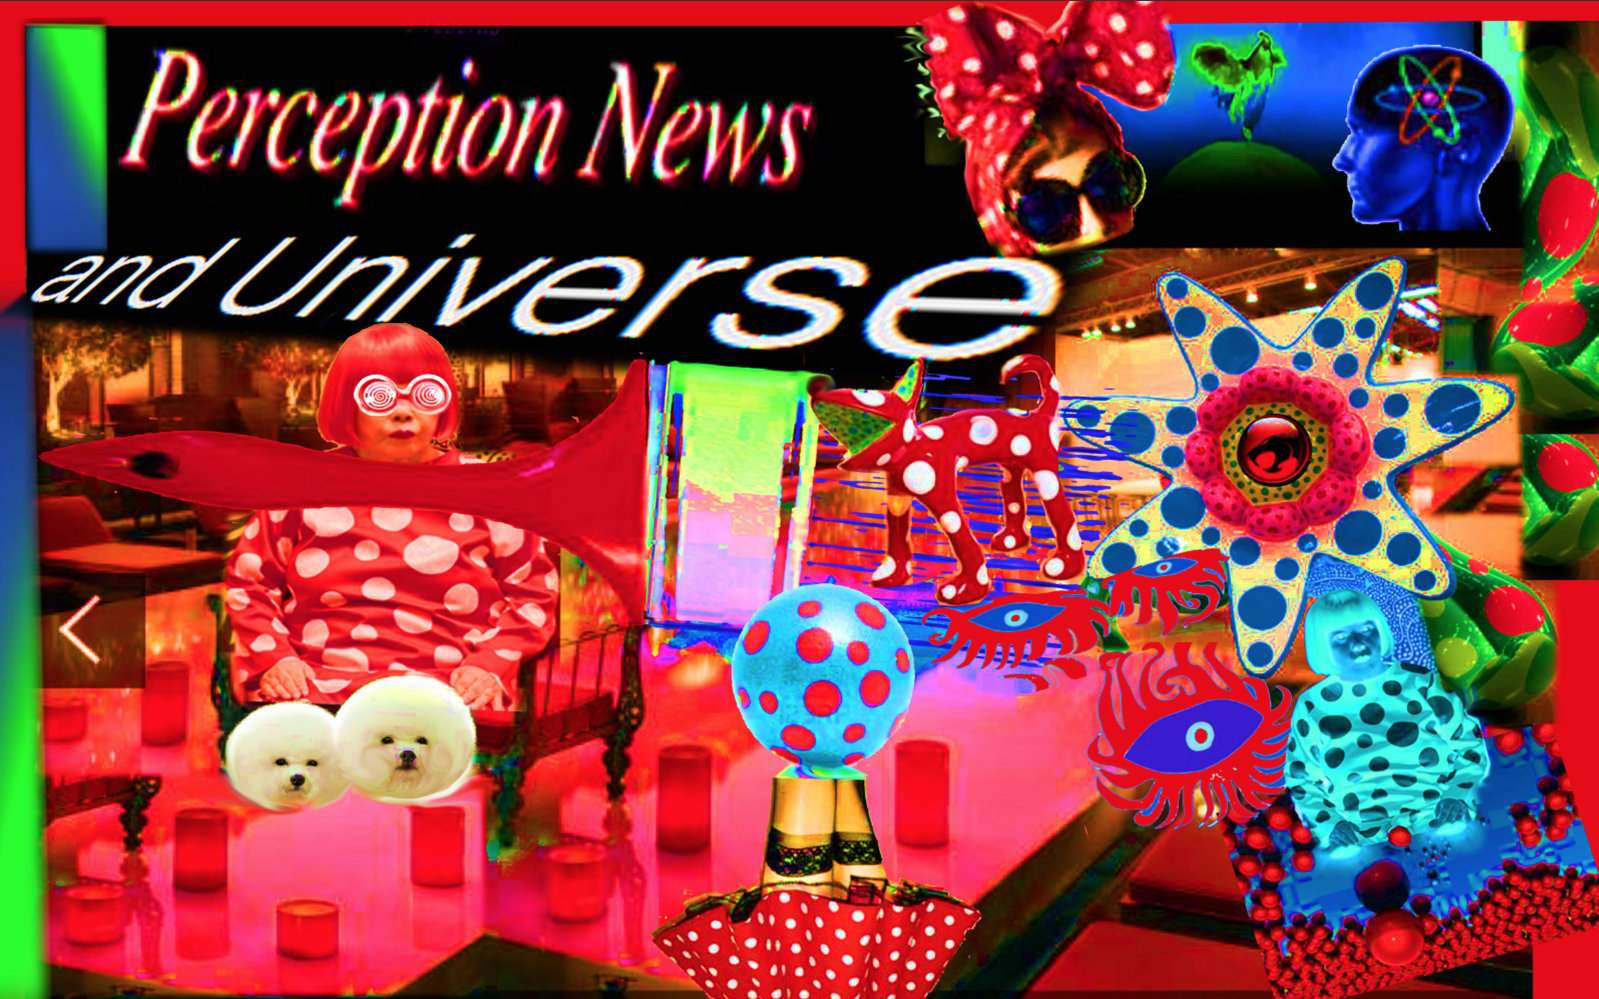 Perception News - Sher Love